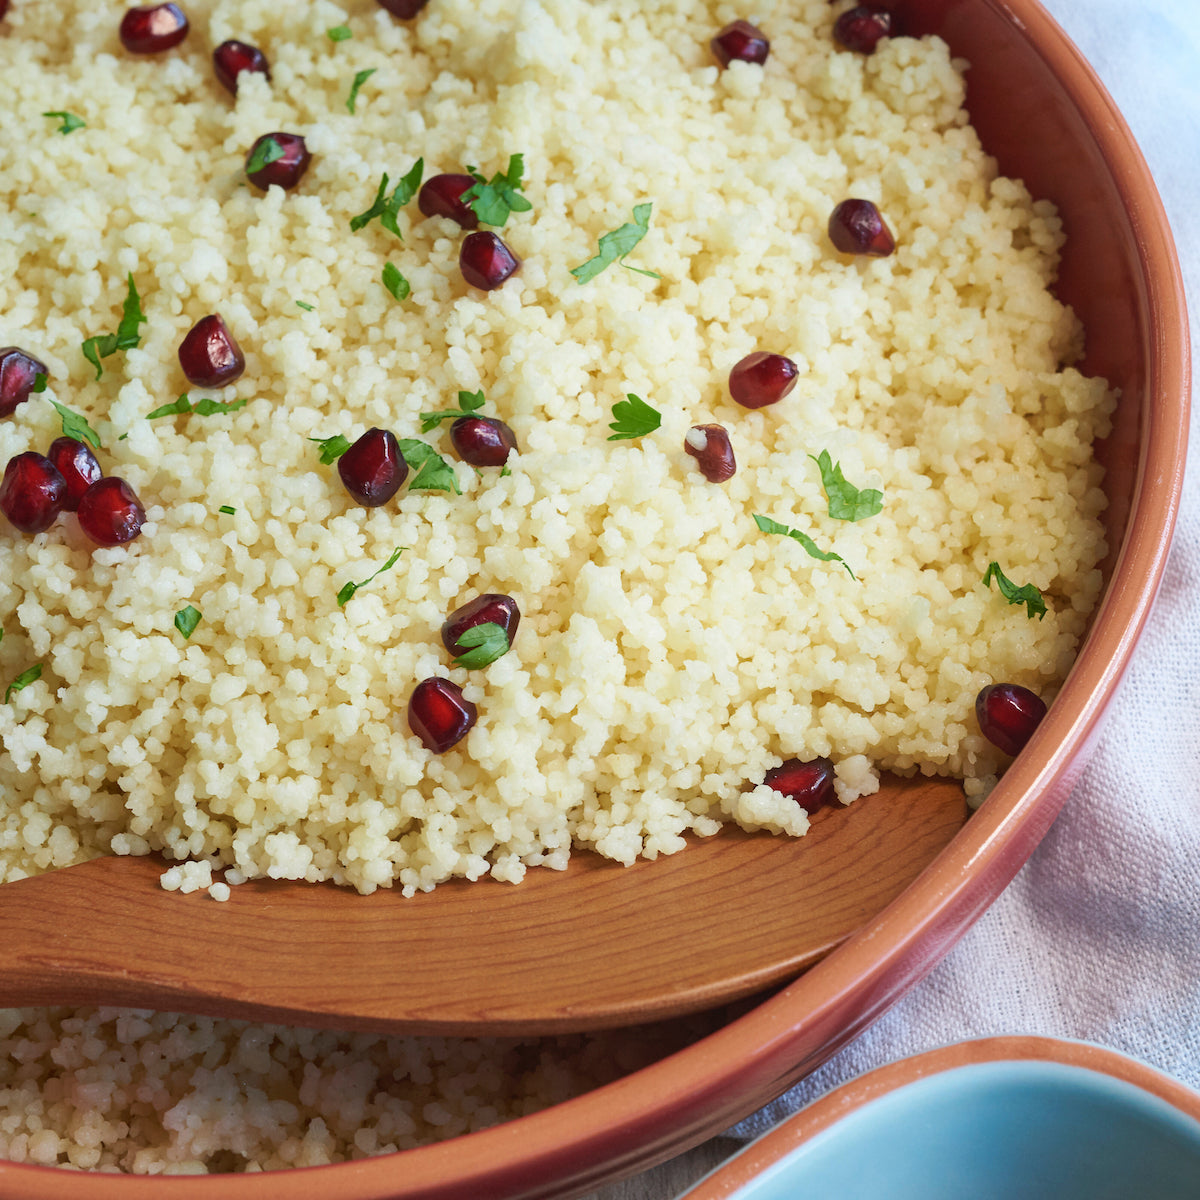 Tray of Buttery Couscous